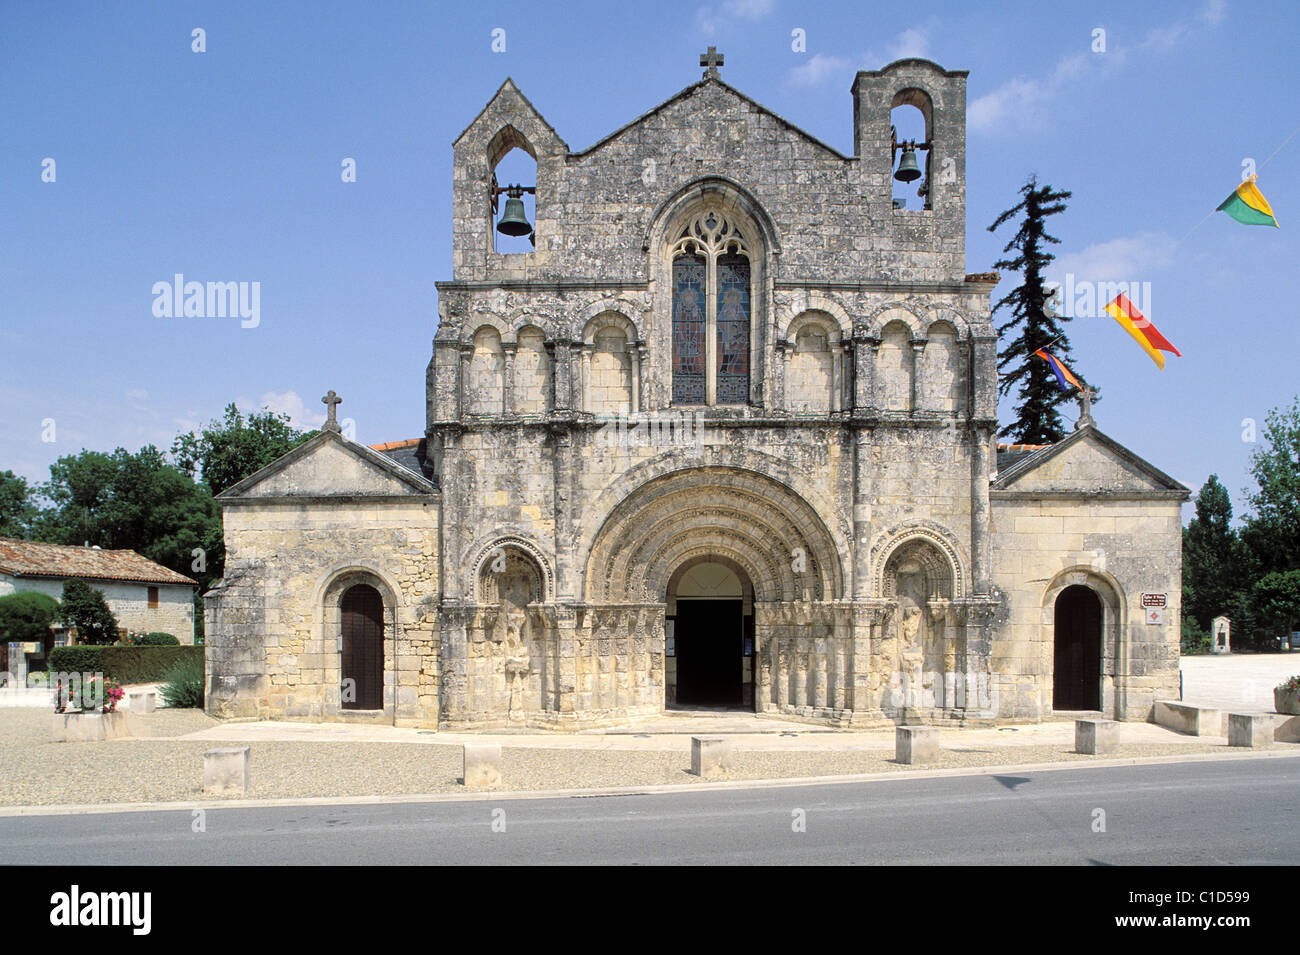 france charente maritime pons the facade of saint vivien church stock photo royalty free. Black Bedroom Furniture Sets. Home Design Ideas